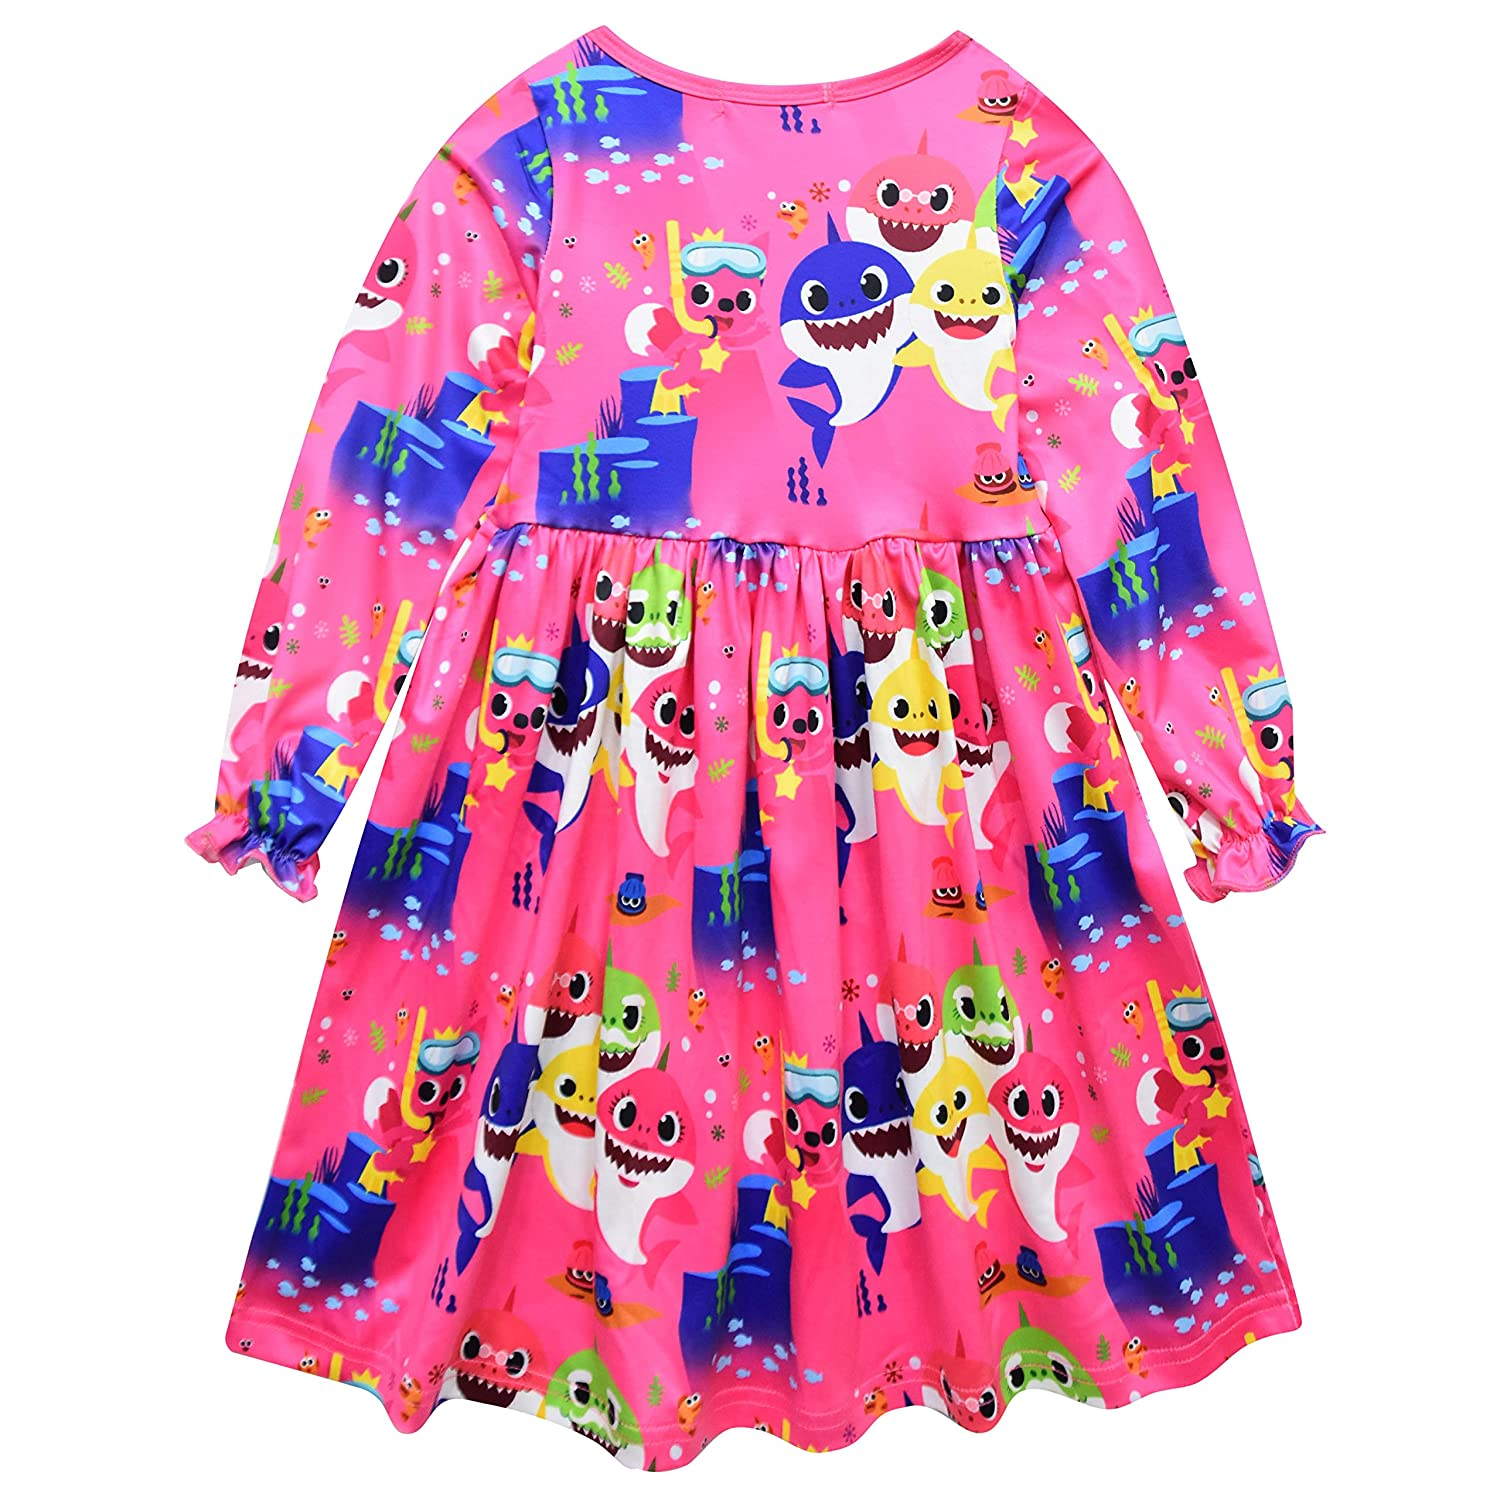 Crazy Gotend Toddle Girls Nightgown Sleepwear Nightie Casual Dress